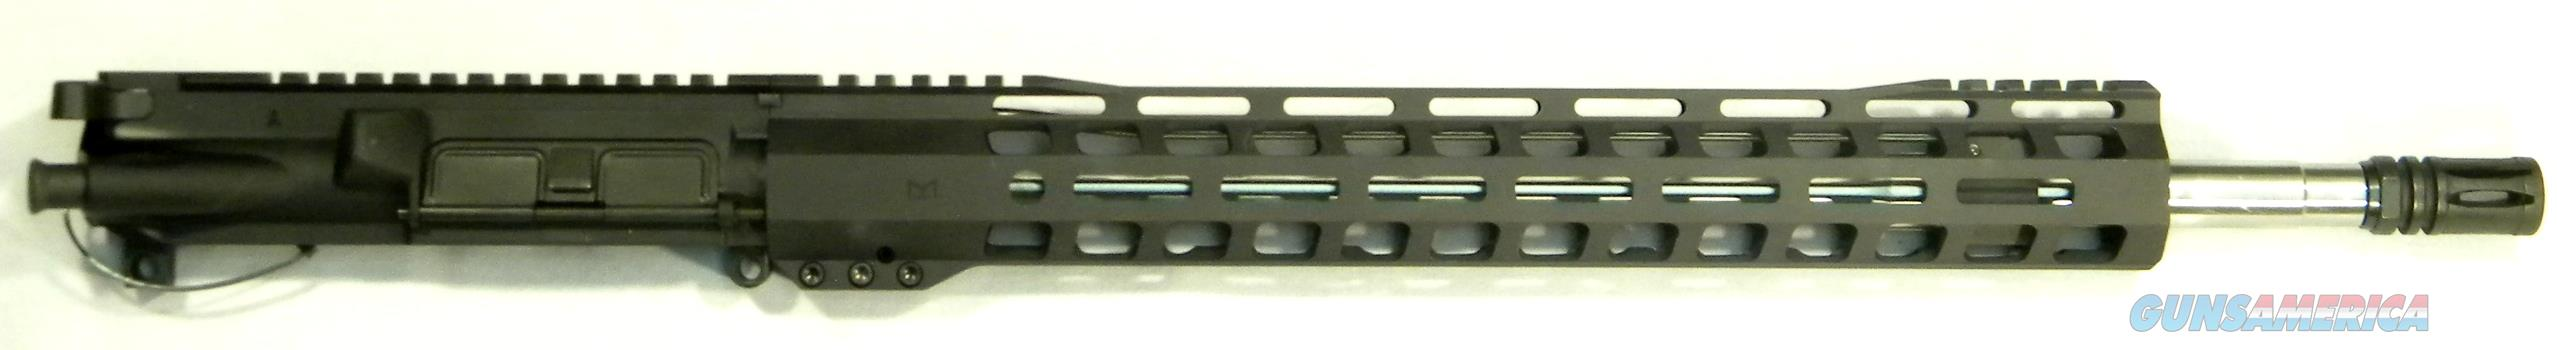 """.224 Valkyrie Complete Upper For AR-15, 18"""" w/ Free-Float Hand Guard  Non-Guns > Gun Parts > M16-AR15"""